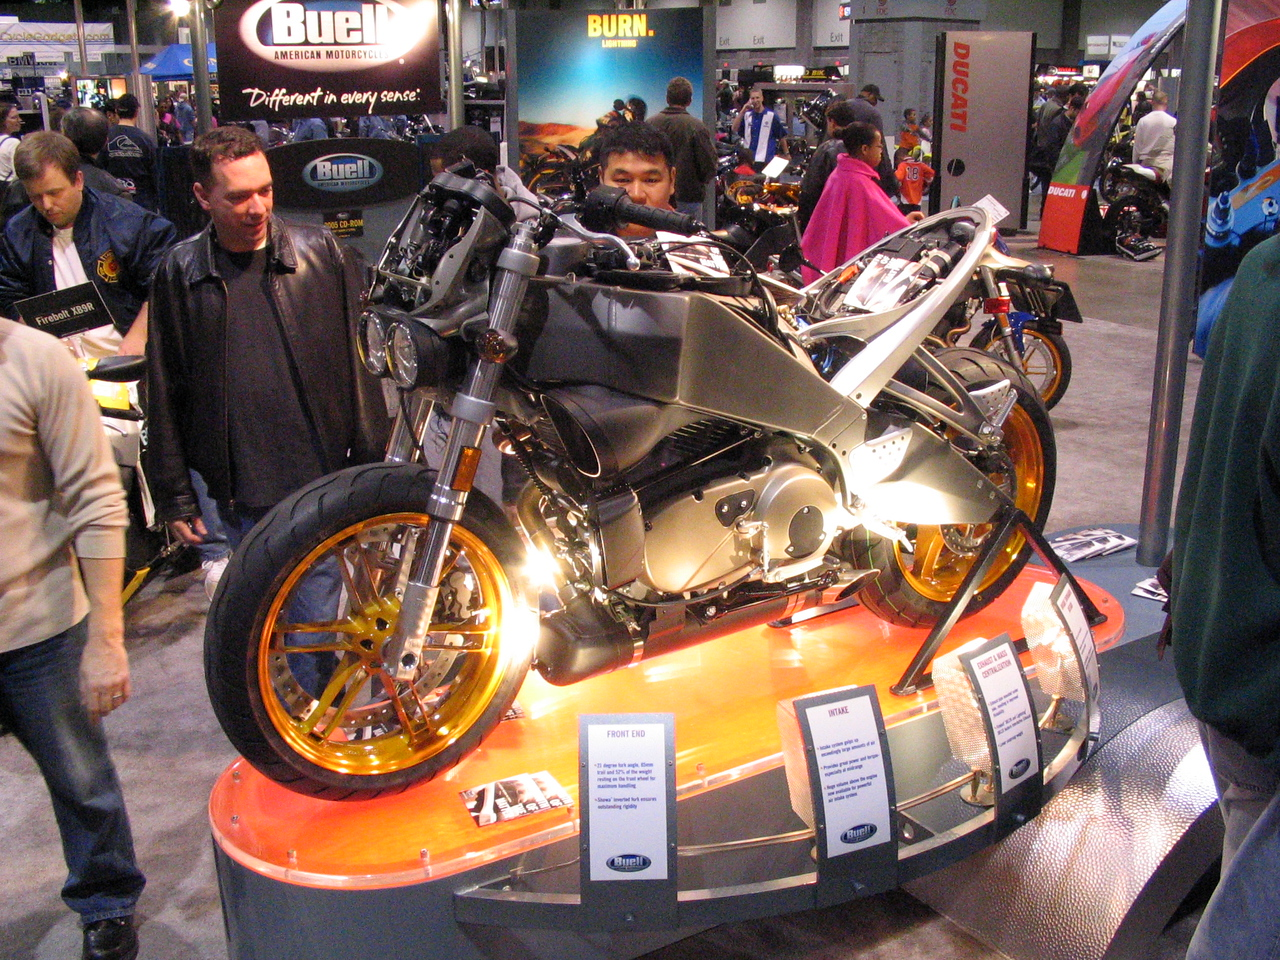 Buell's star offering, whatever it is (Sorry ...).